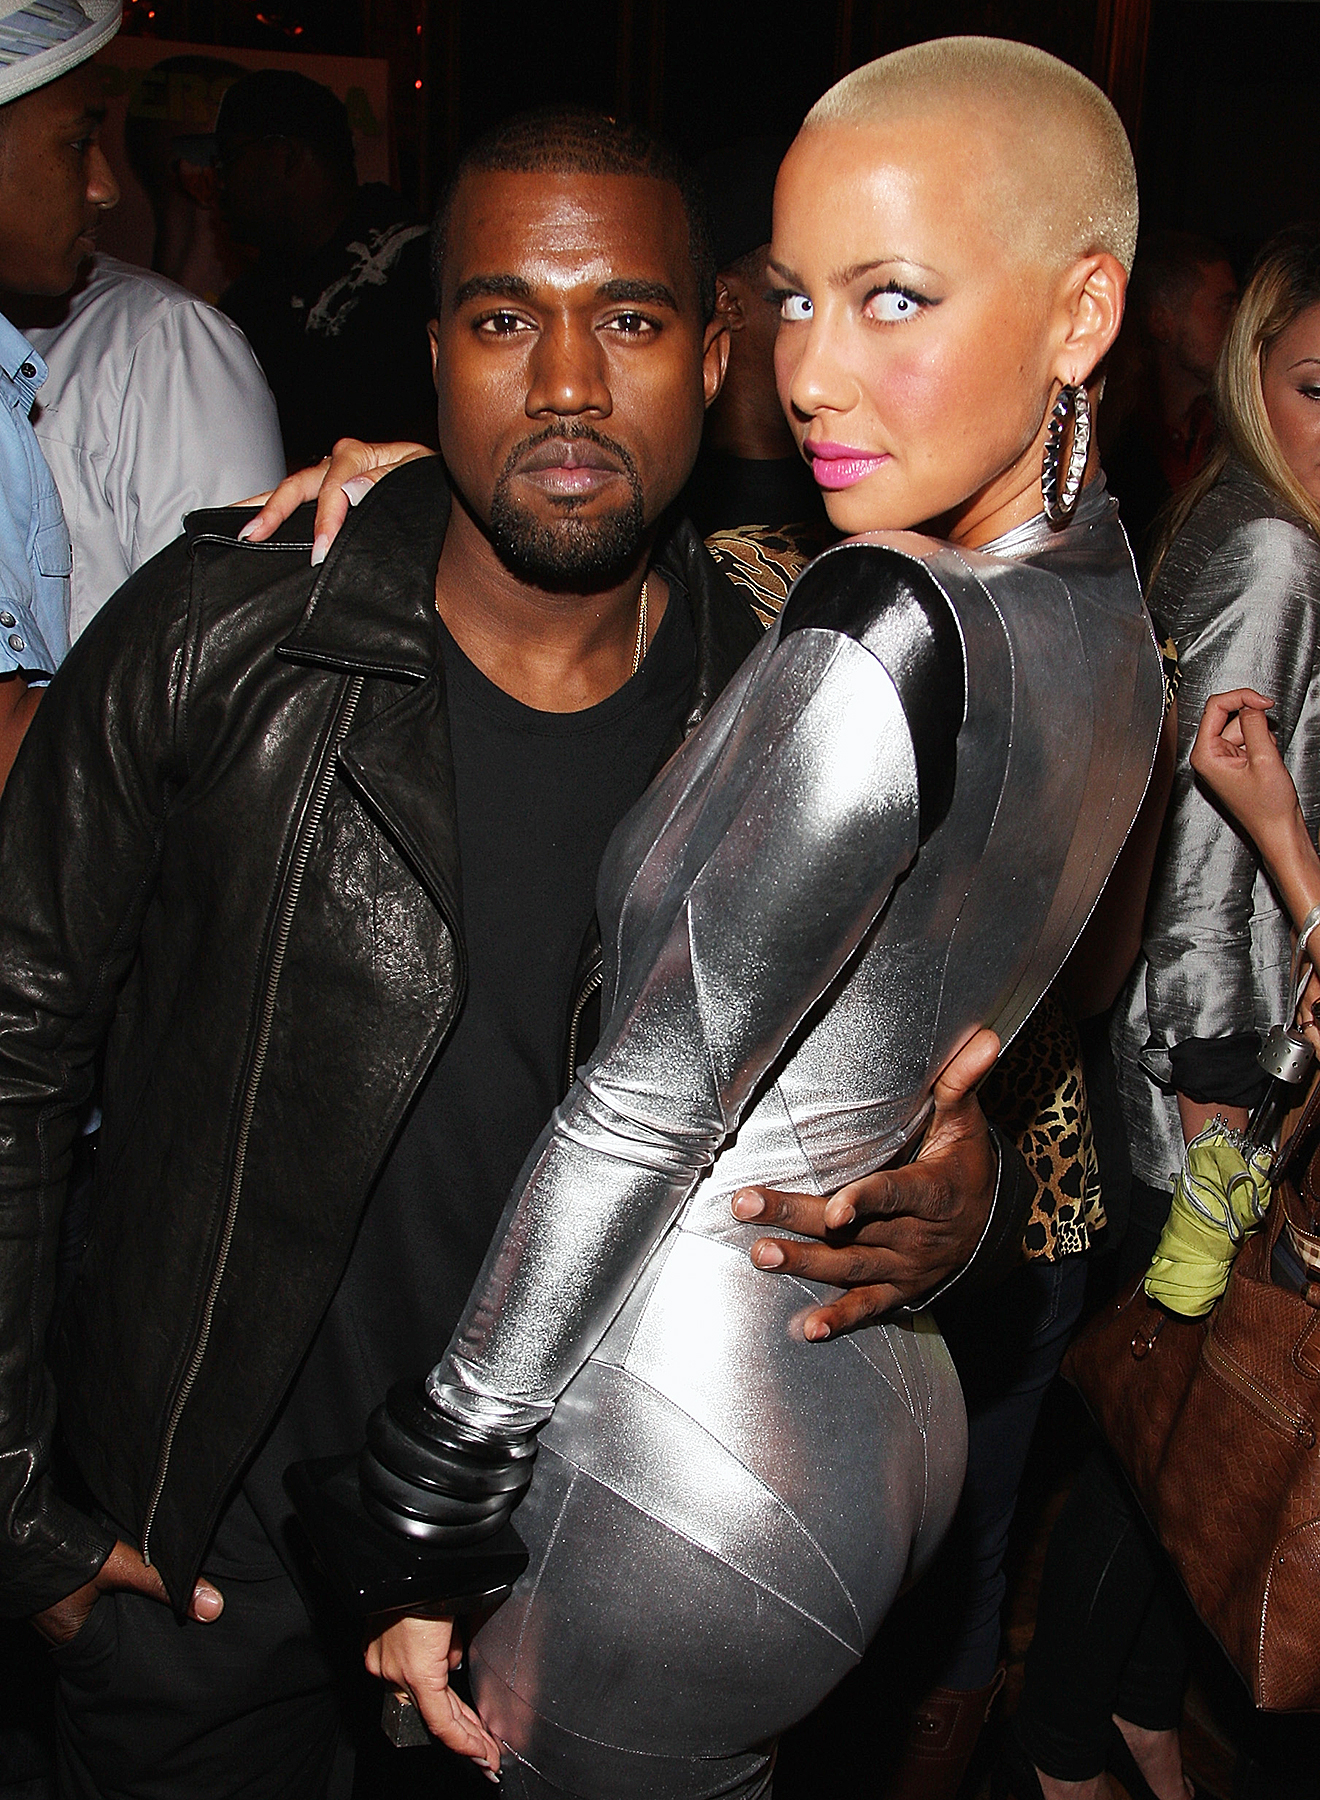 A History of Kanye West and Amber Rose's